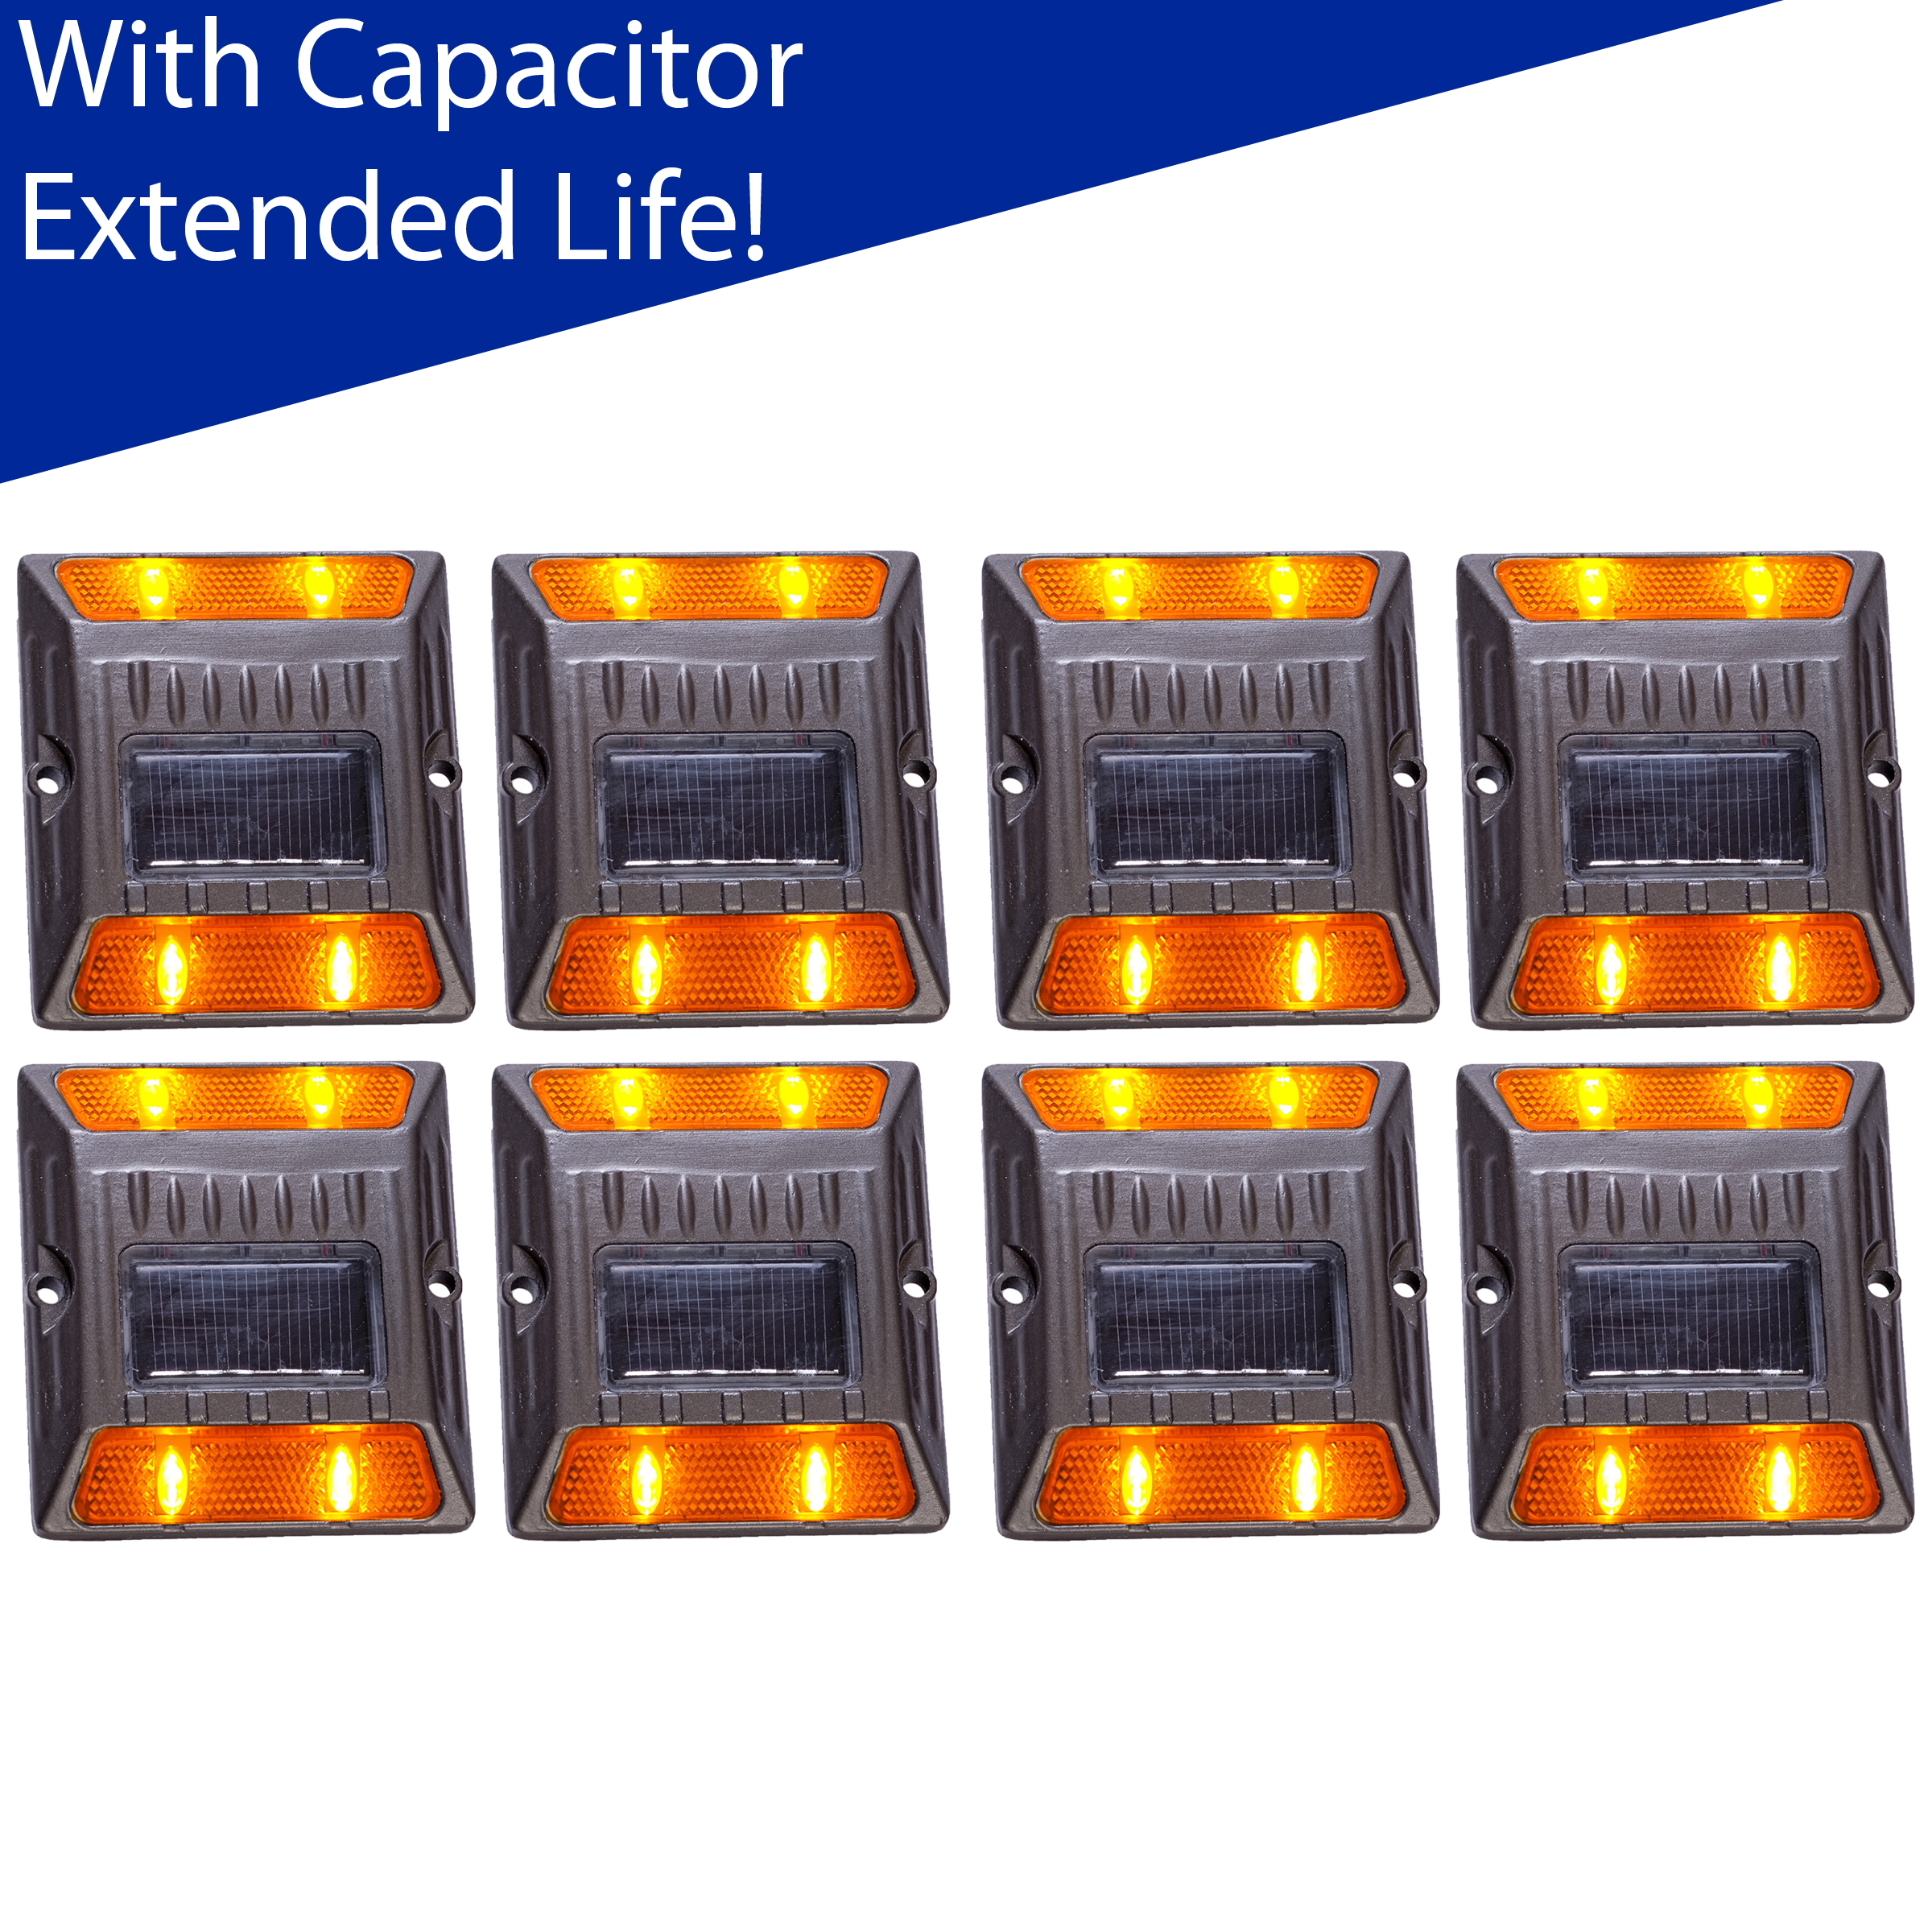 Reusable Revolution (8 Pack) Amber Alloy Solar Road Stud Path Deck Dock LED Light With Capacitor at Sears.com